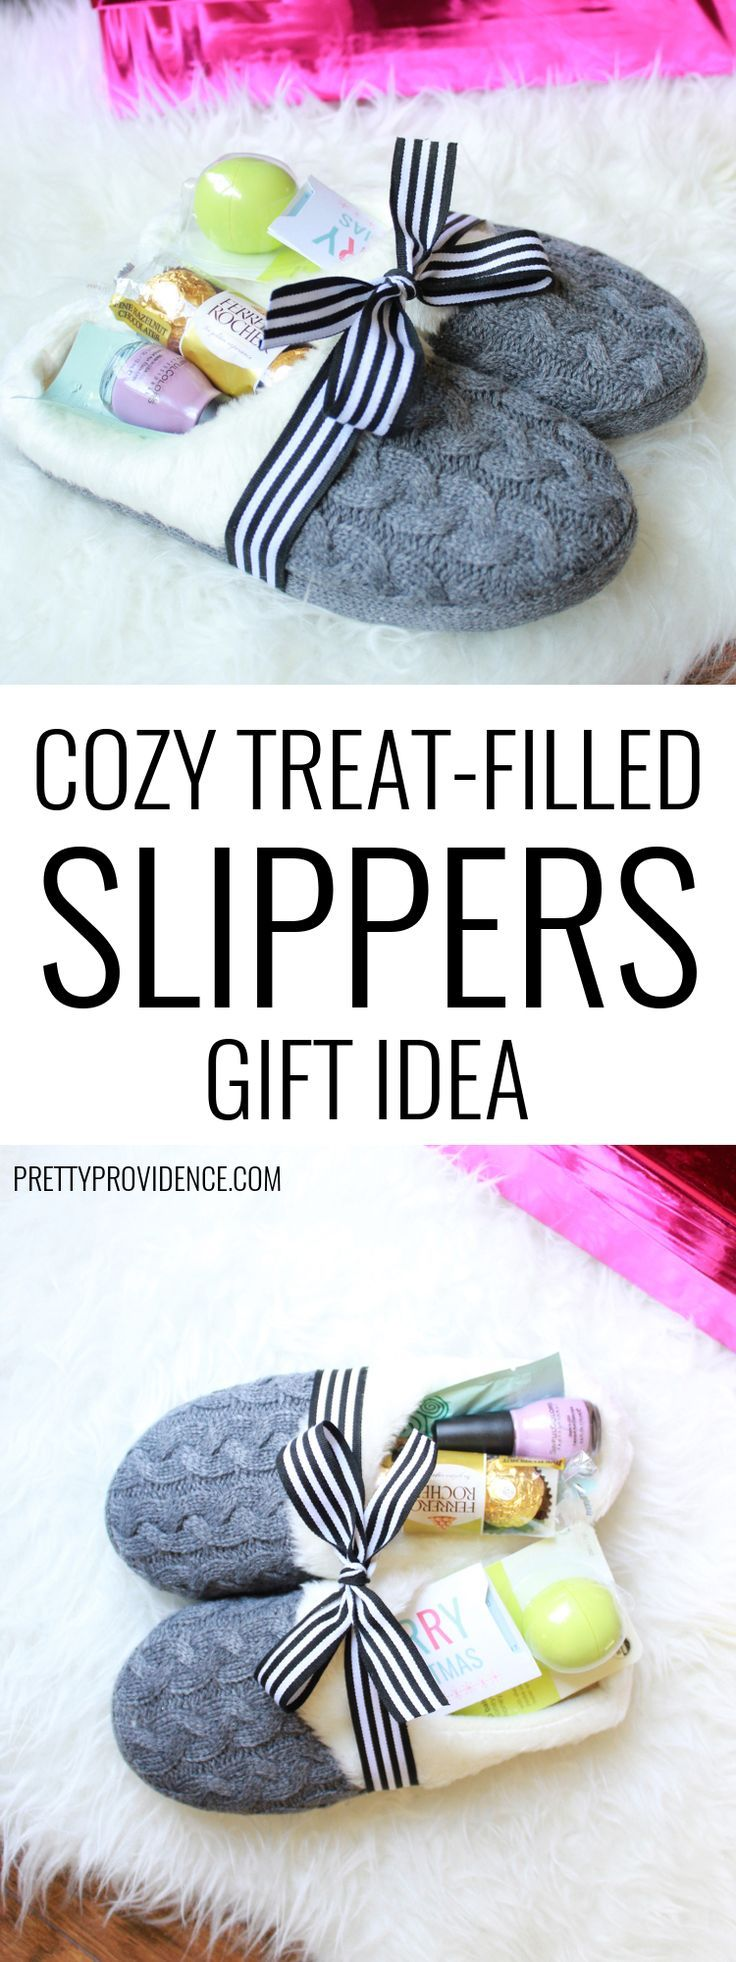 slippers gift idea gift christmas gifts and holidays